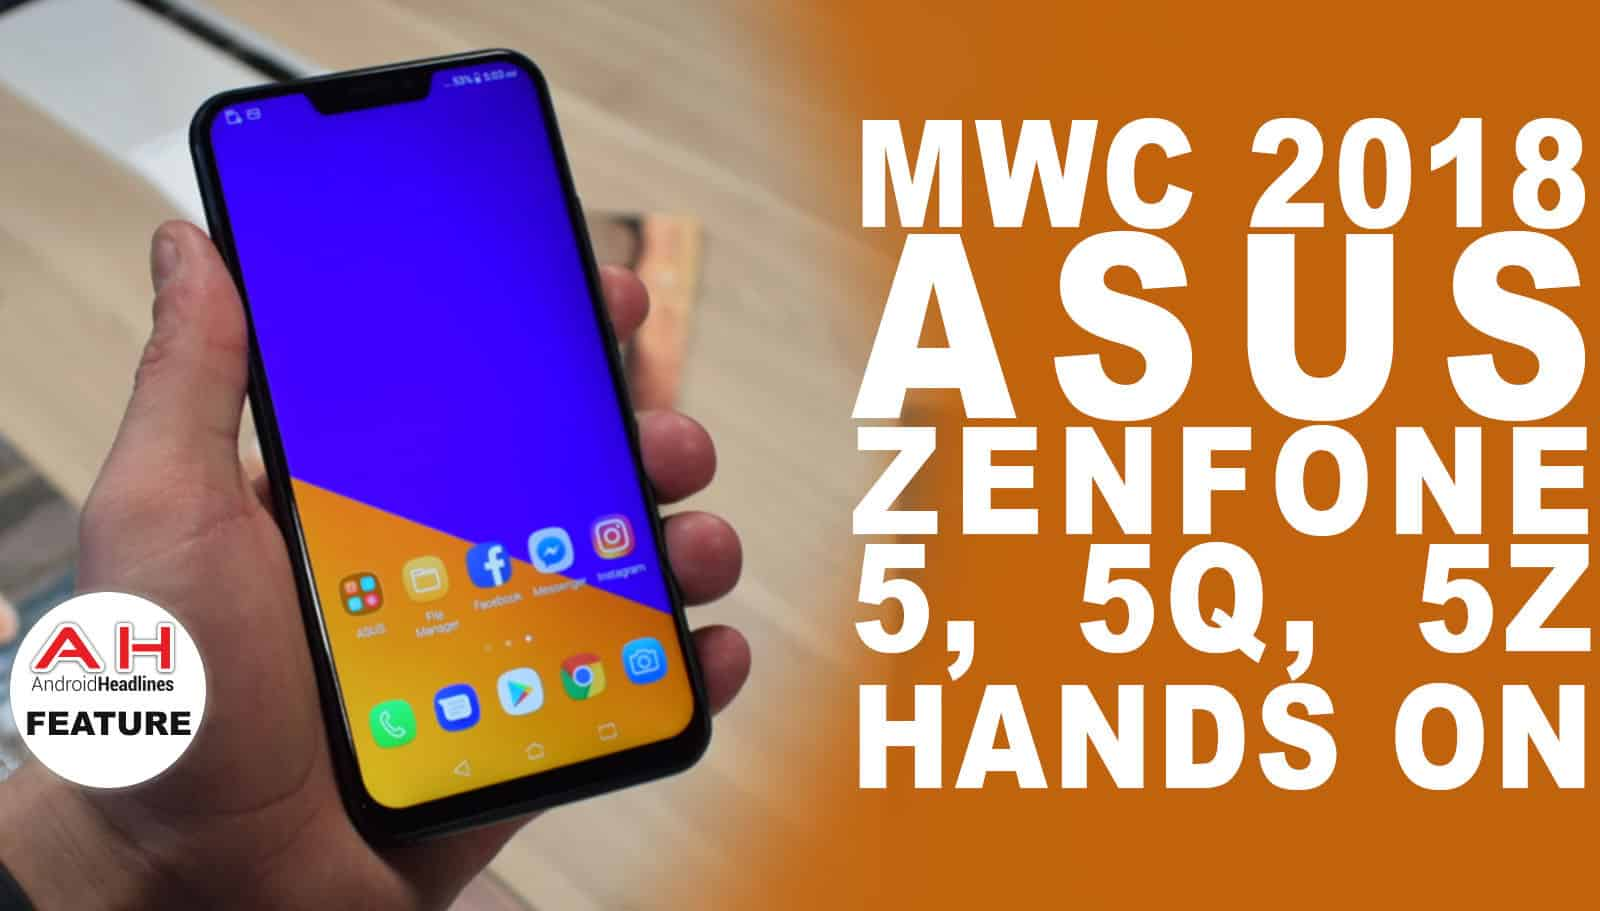 Video Asus Zenfone 5 5q And 5z Hands On Mwc 2018